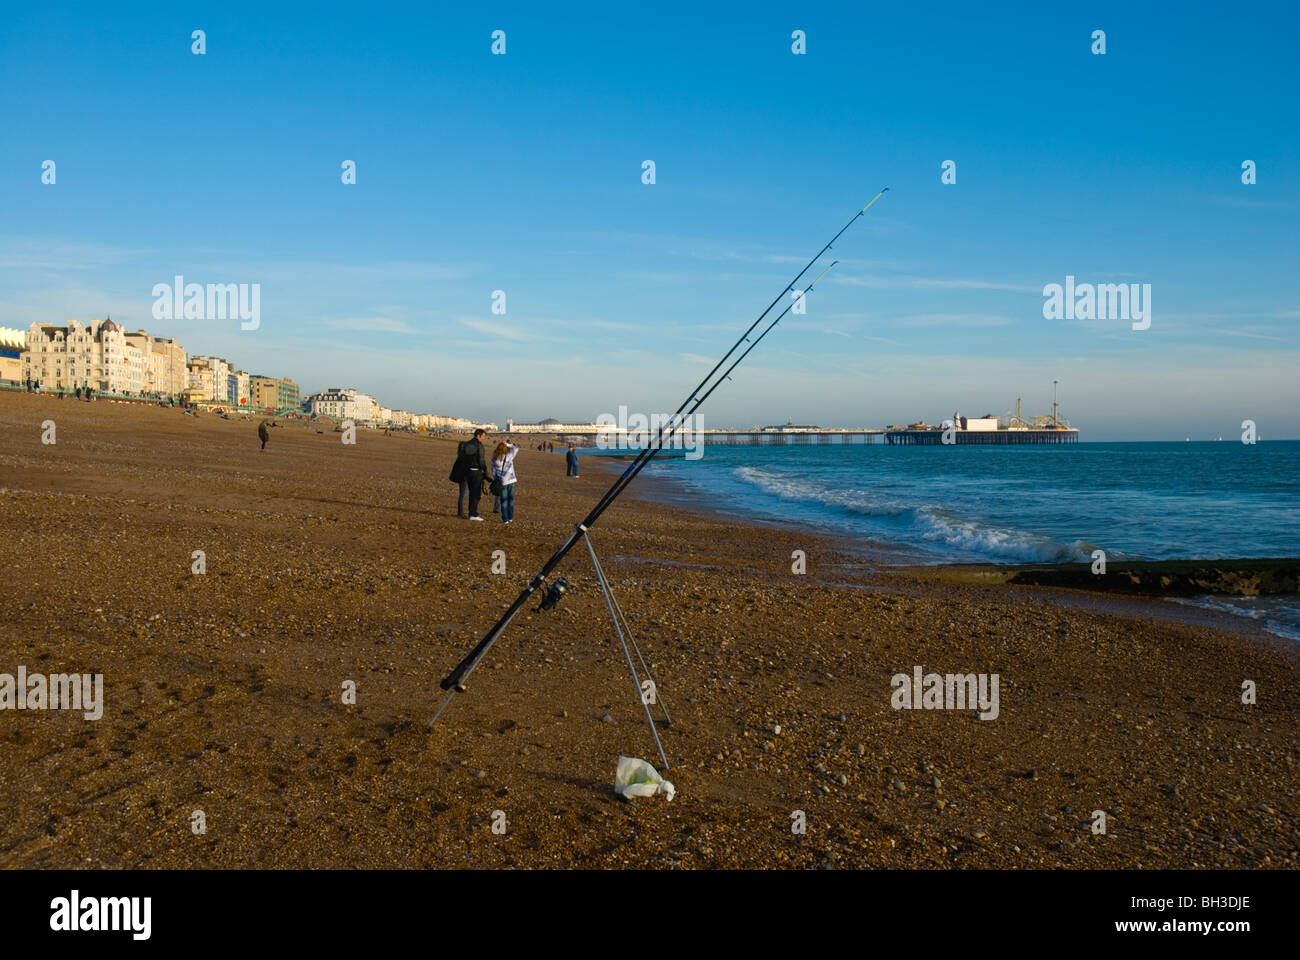 Fishing rod standing on its own at beach in Brighton England UK Europe - Stock Image